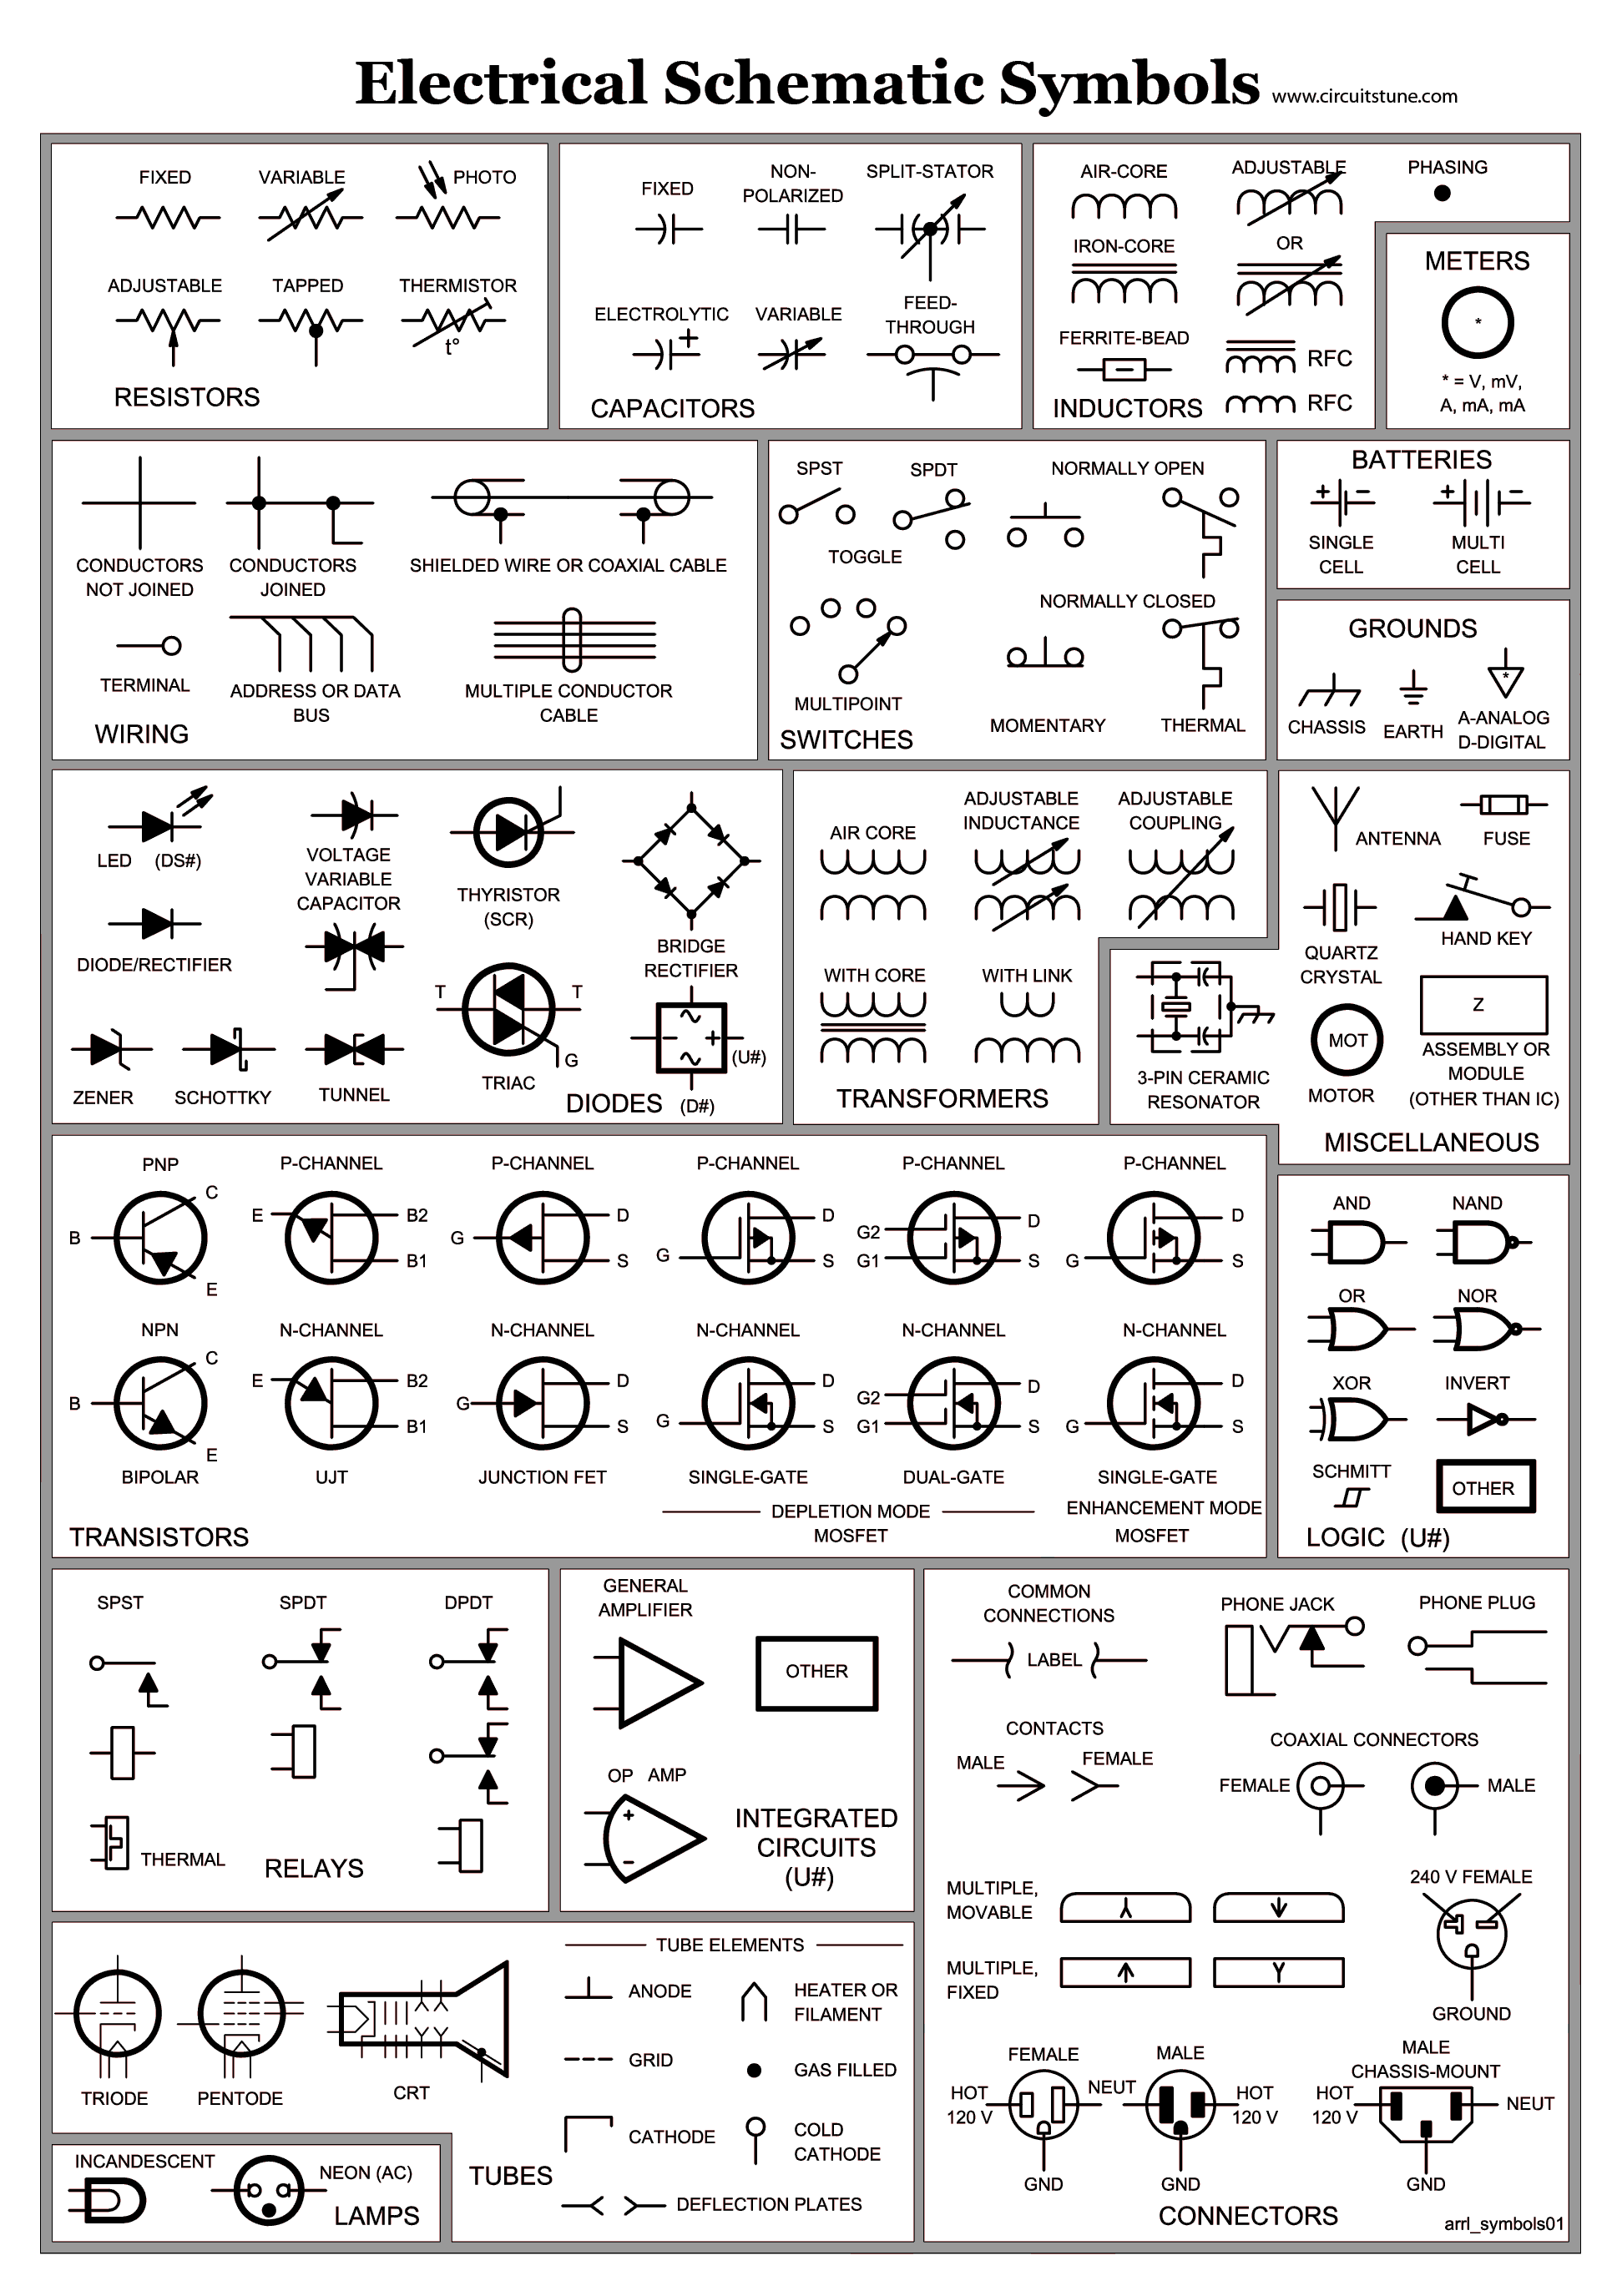 Electrical Schematic Symbols Wire Diagram Symbols Automotive